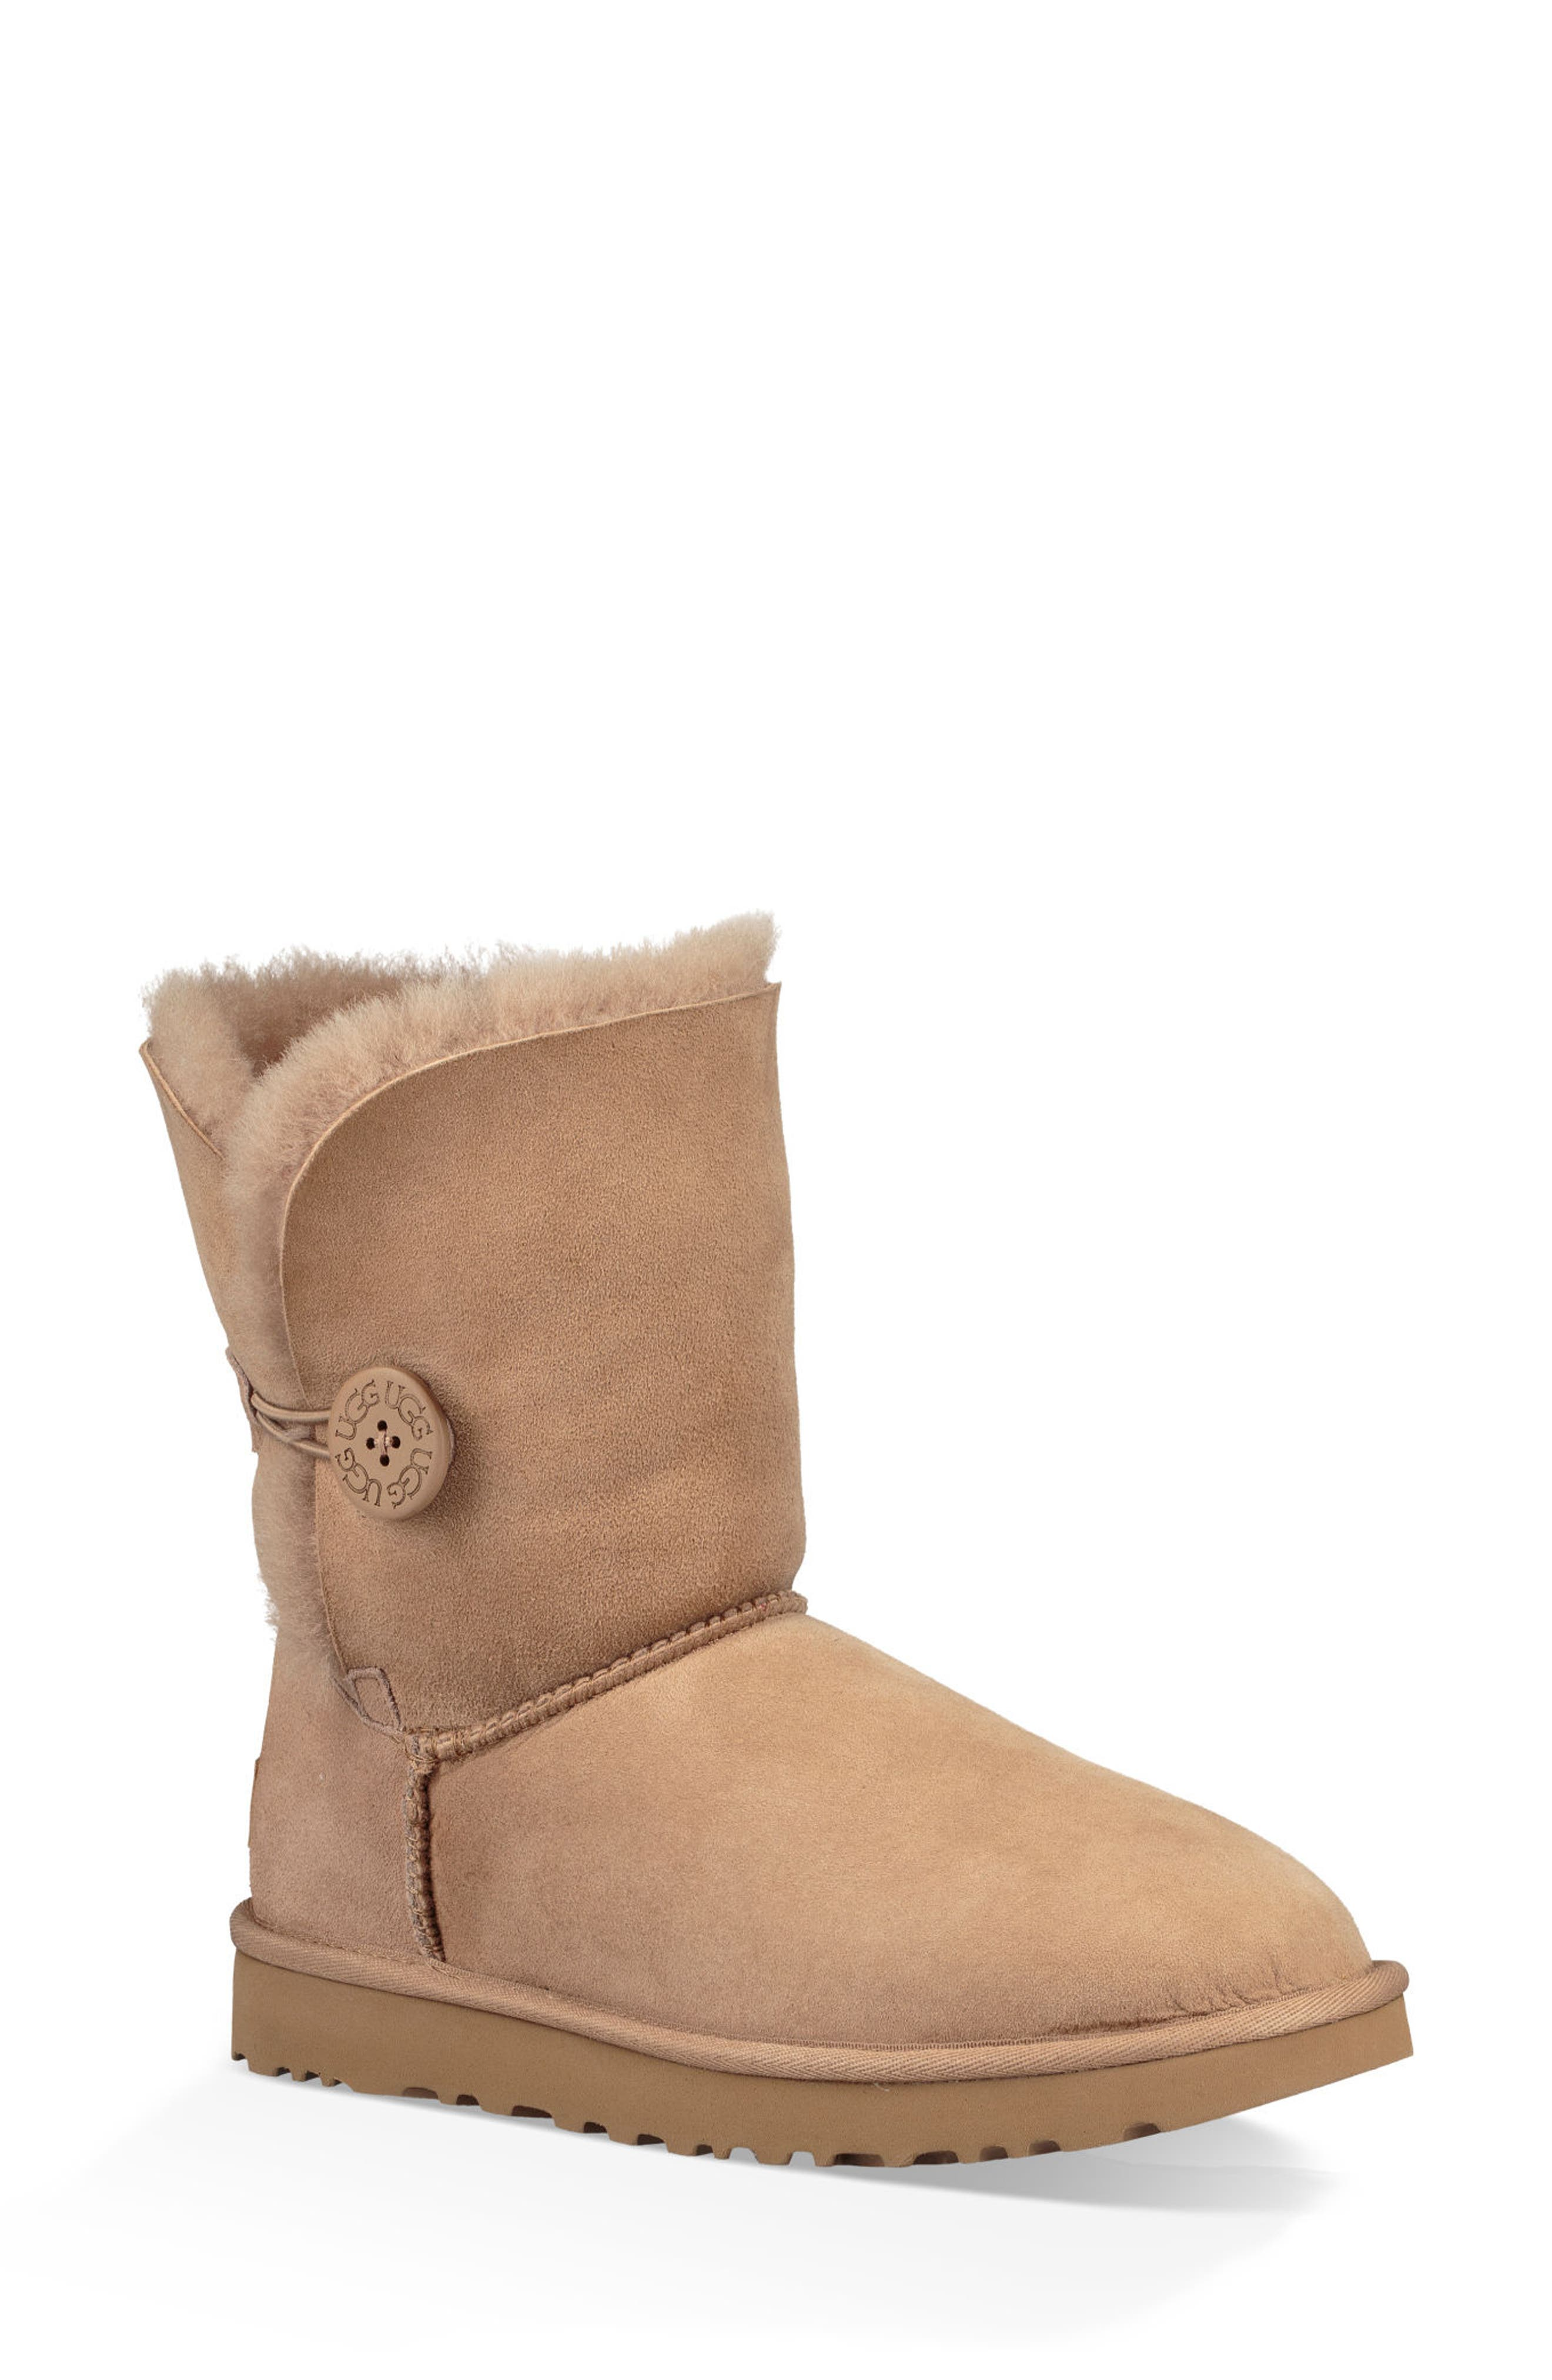 'Bailey Button II' Boot,                         Main,                         color, Fawn Suede